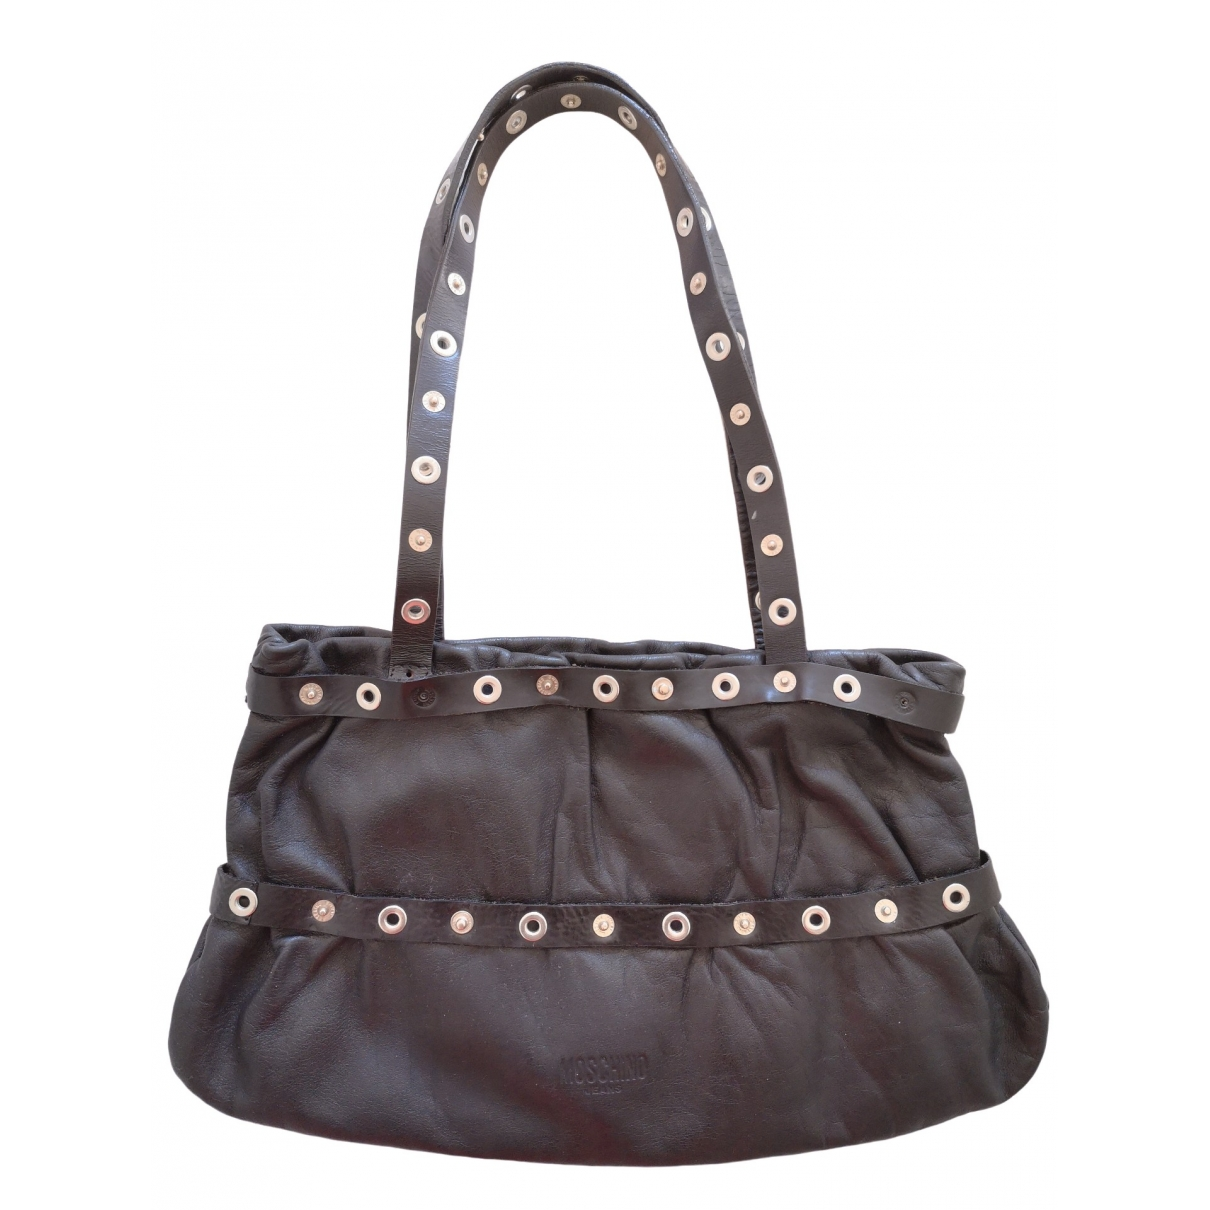 Moschino Cheap And Chic \N Black Leather handbag for Women \N